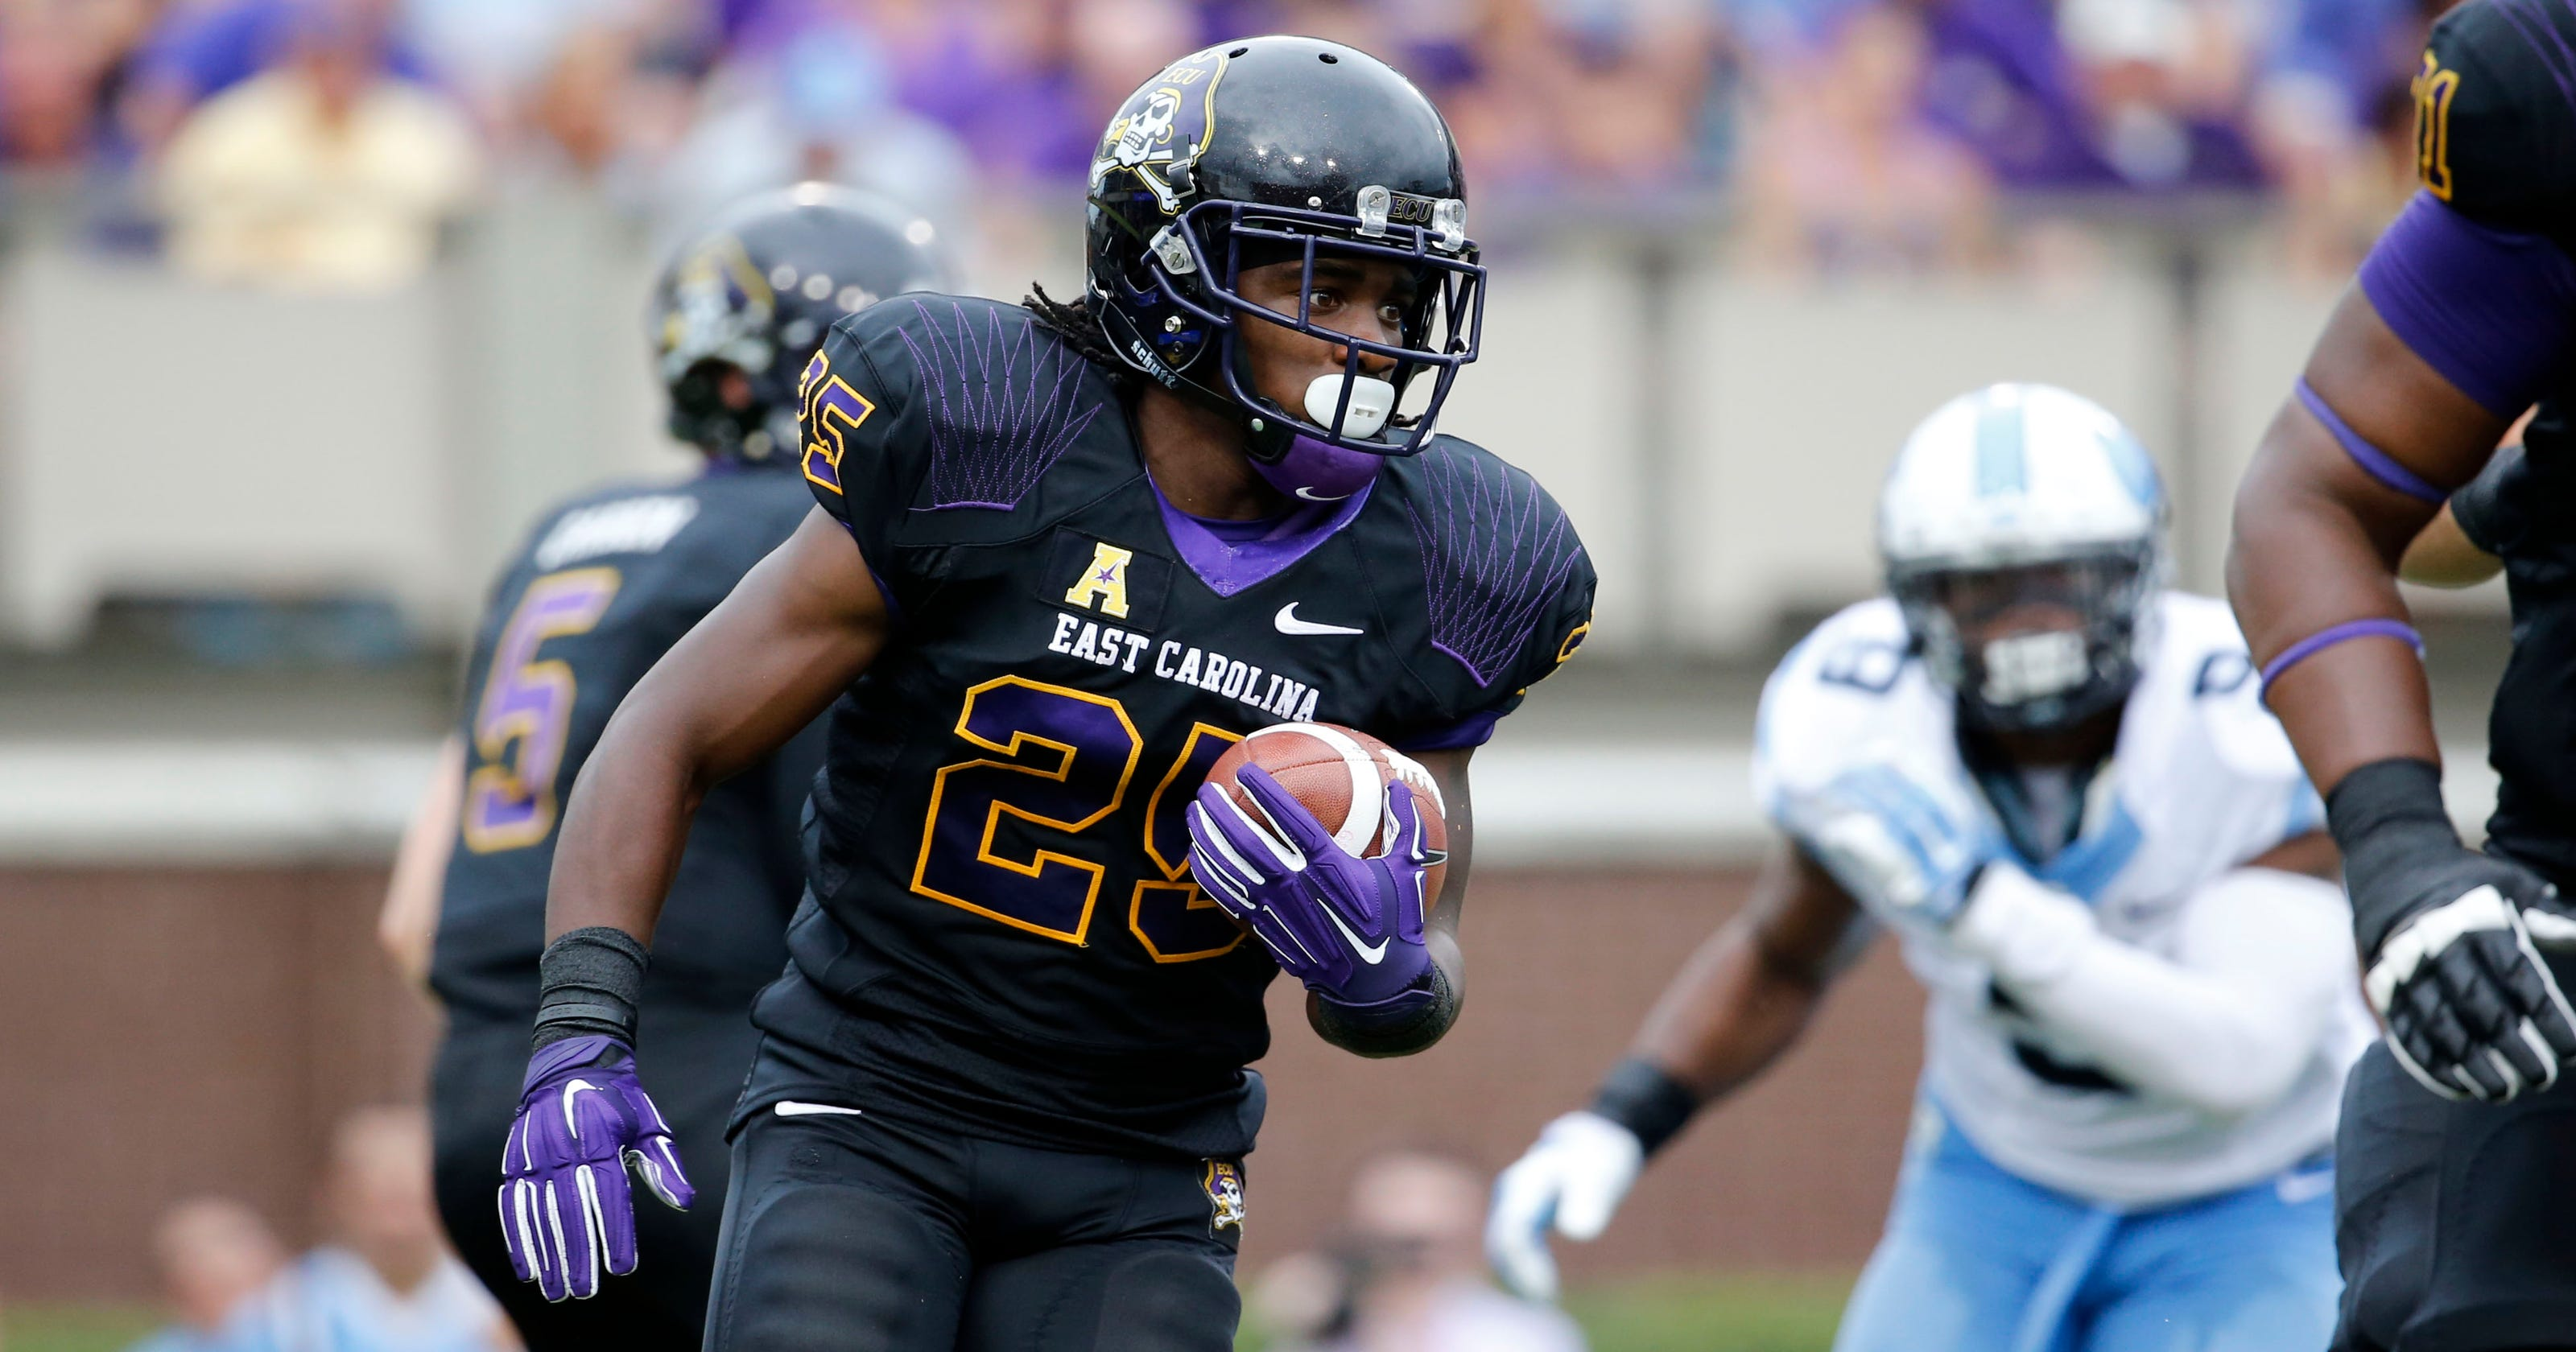 Inside the game: Why East Carolina's offense is clicking North Carolina Football Score